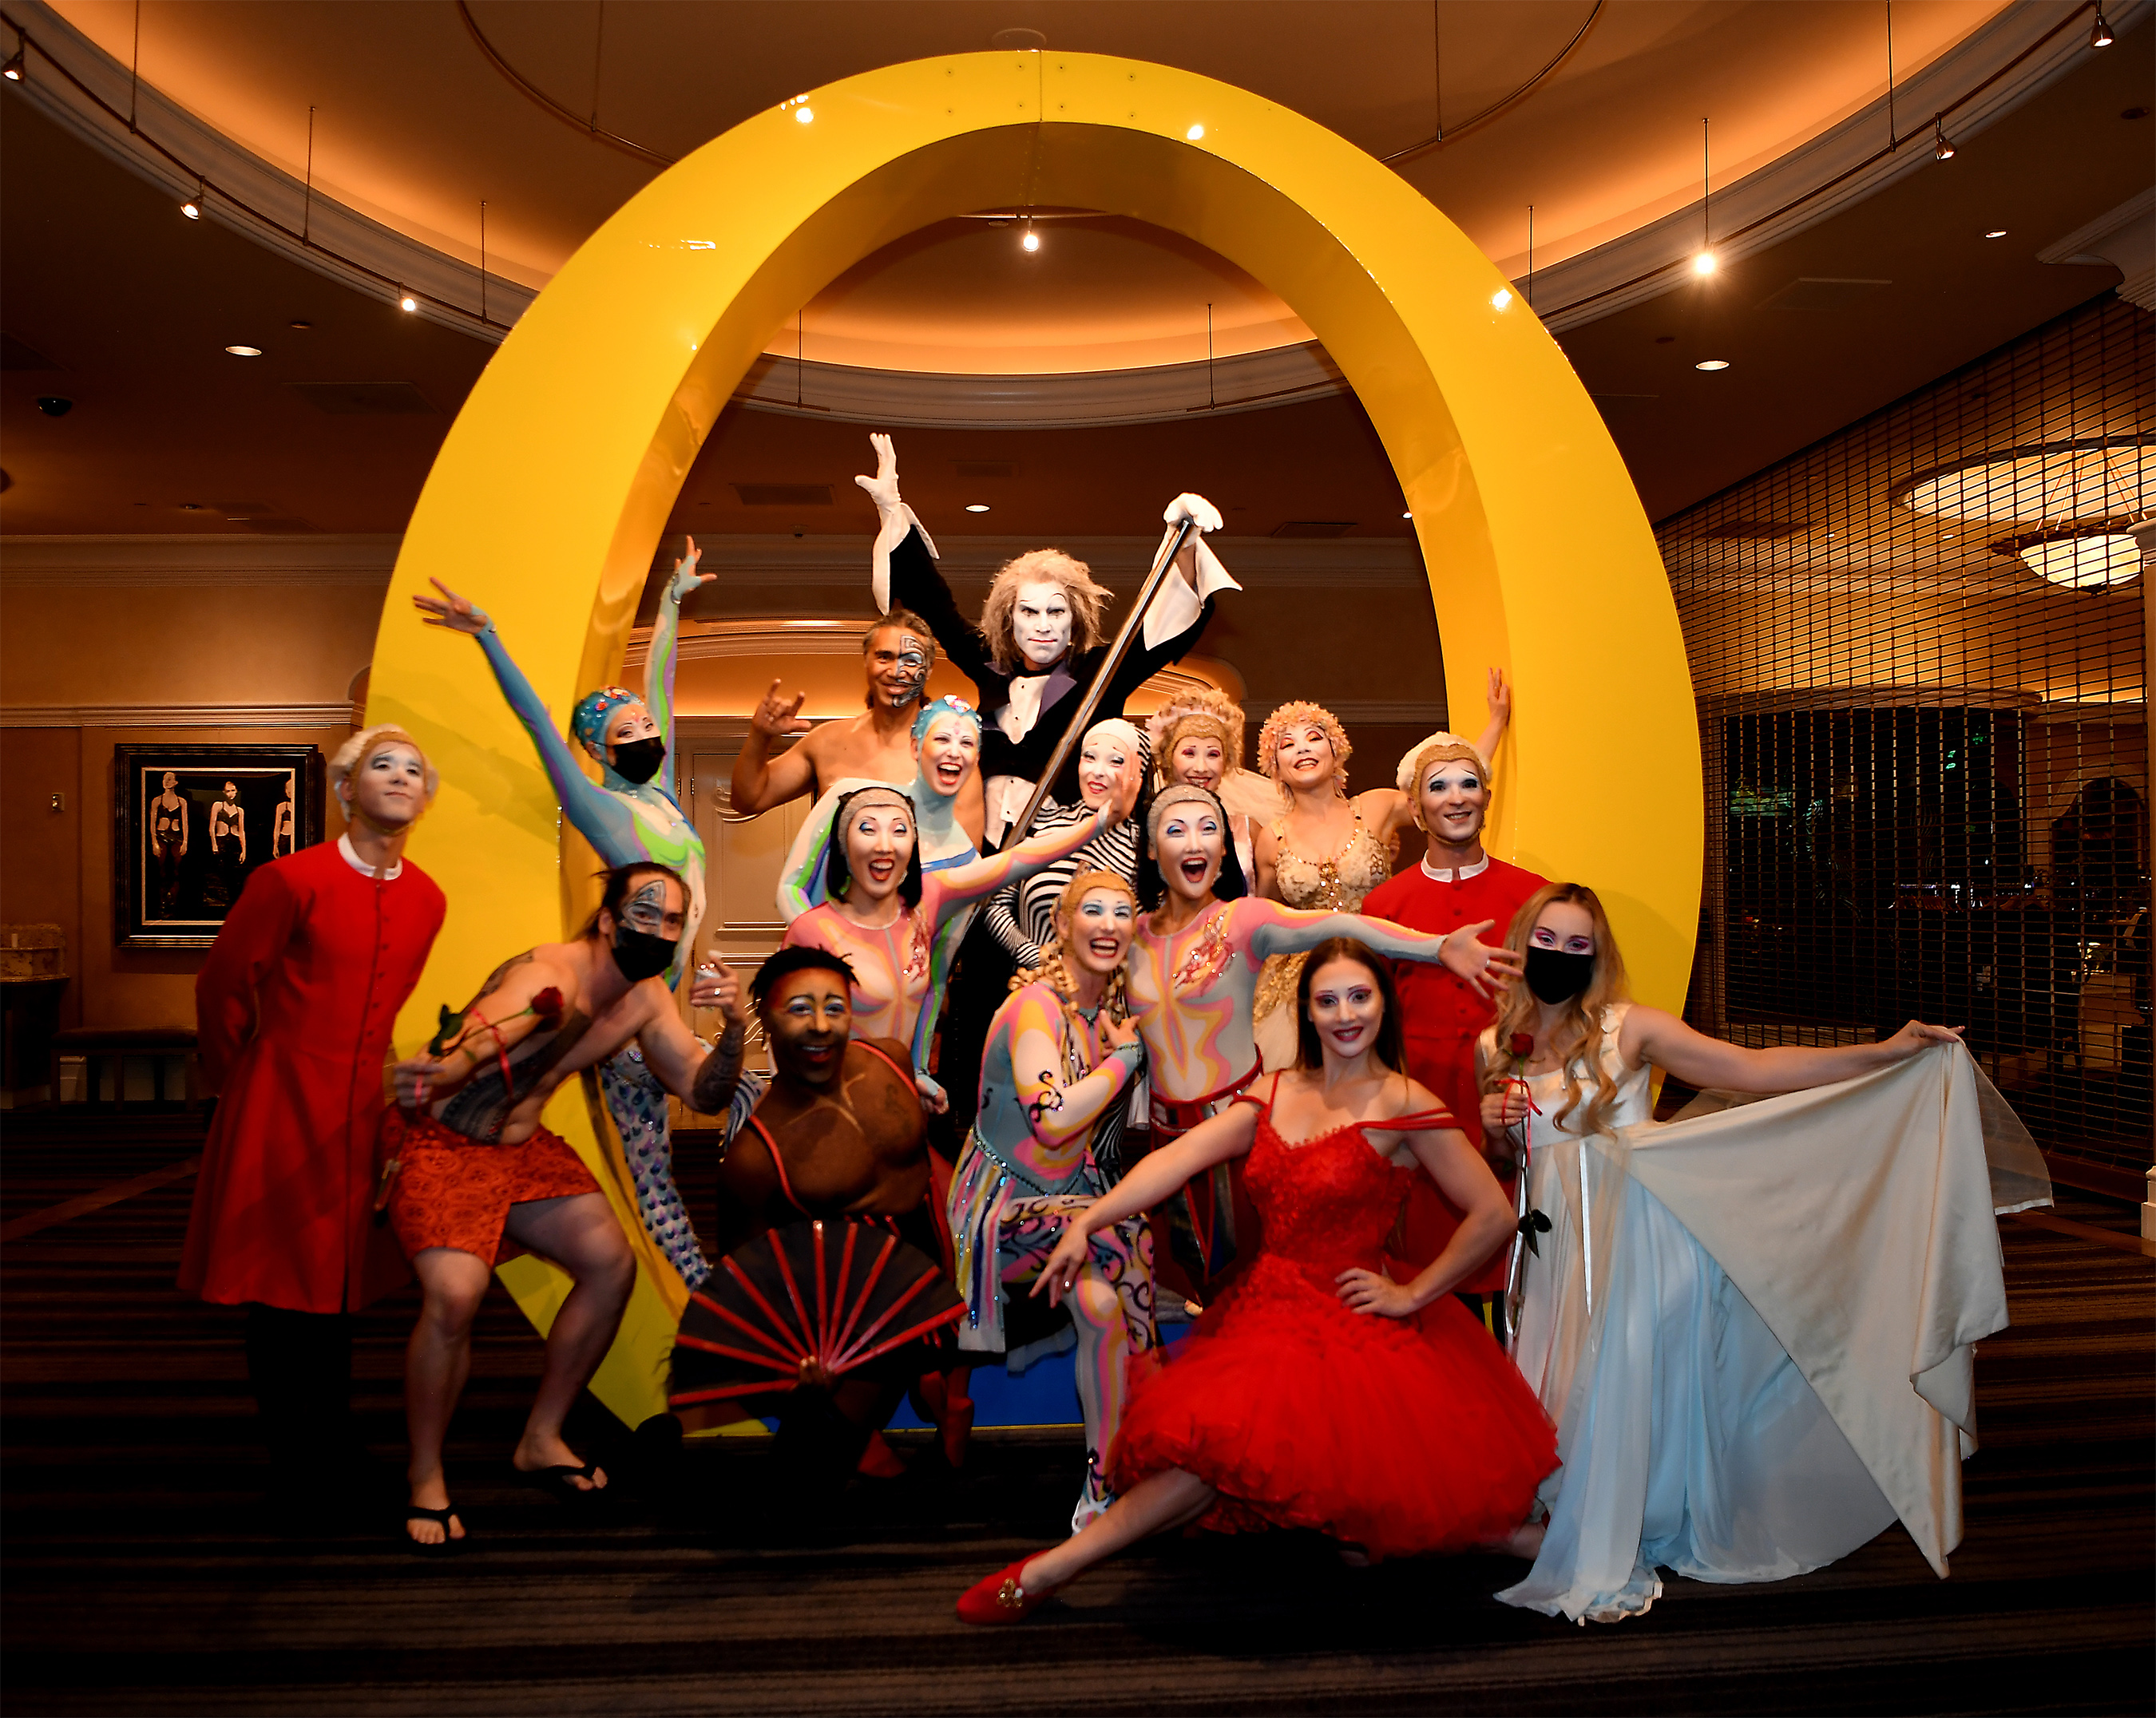 """The spectacular cast of """"O"""" by Cirque du Soleil prepares to take the stage at Bellagio for the first time in 16 months, July 1, 2021"""